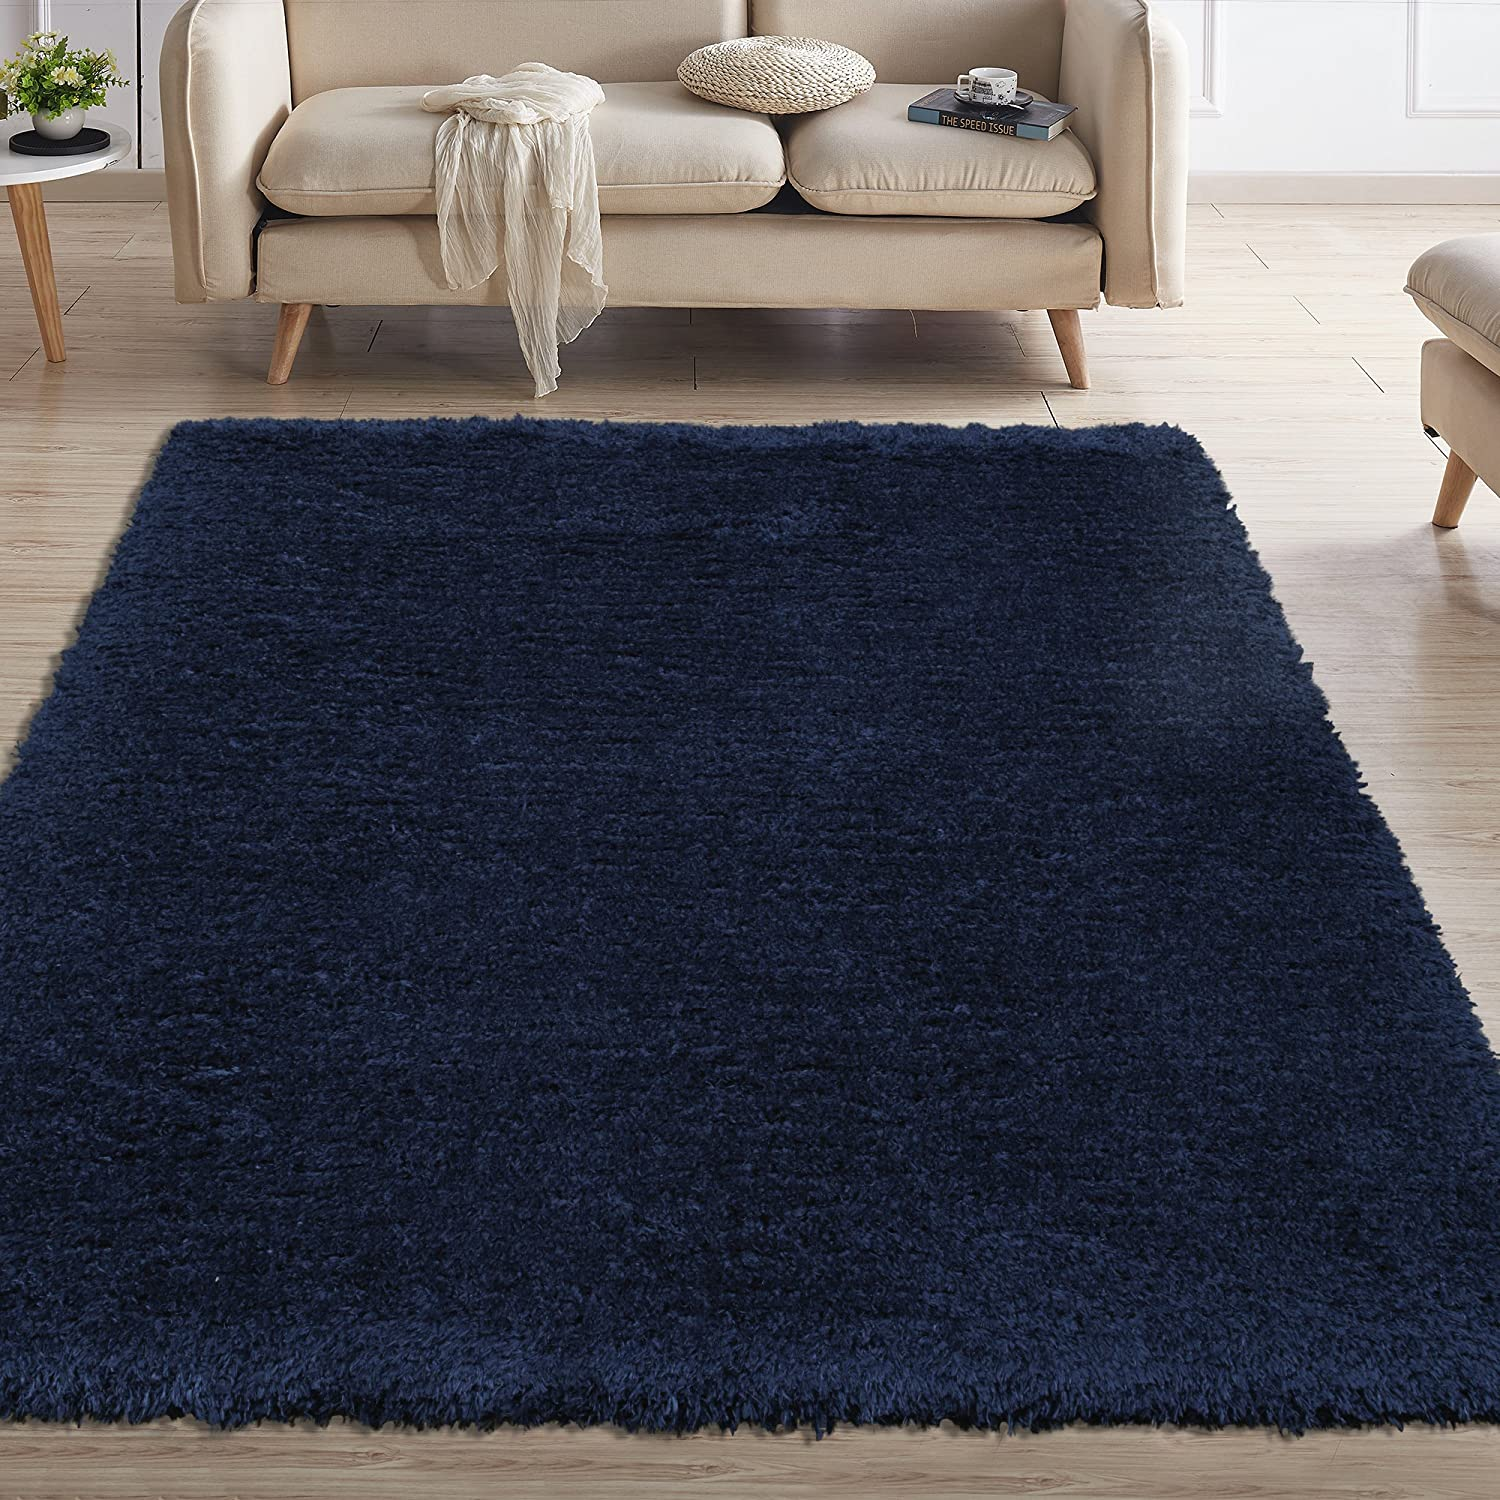 Sweet Home Stores SFFR1006-5X7 Flokati Collection Shag Area Rug, 5'3